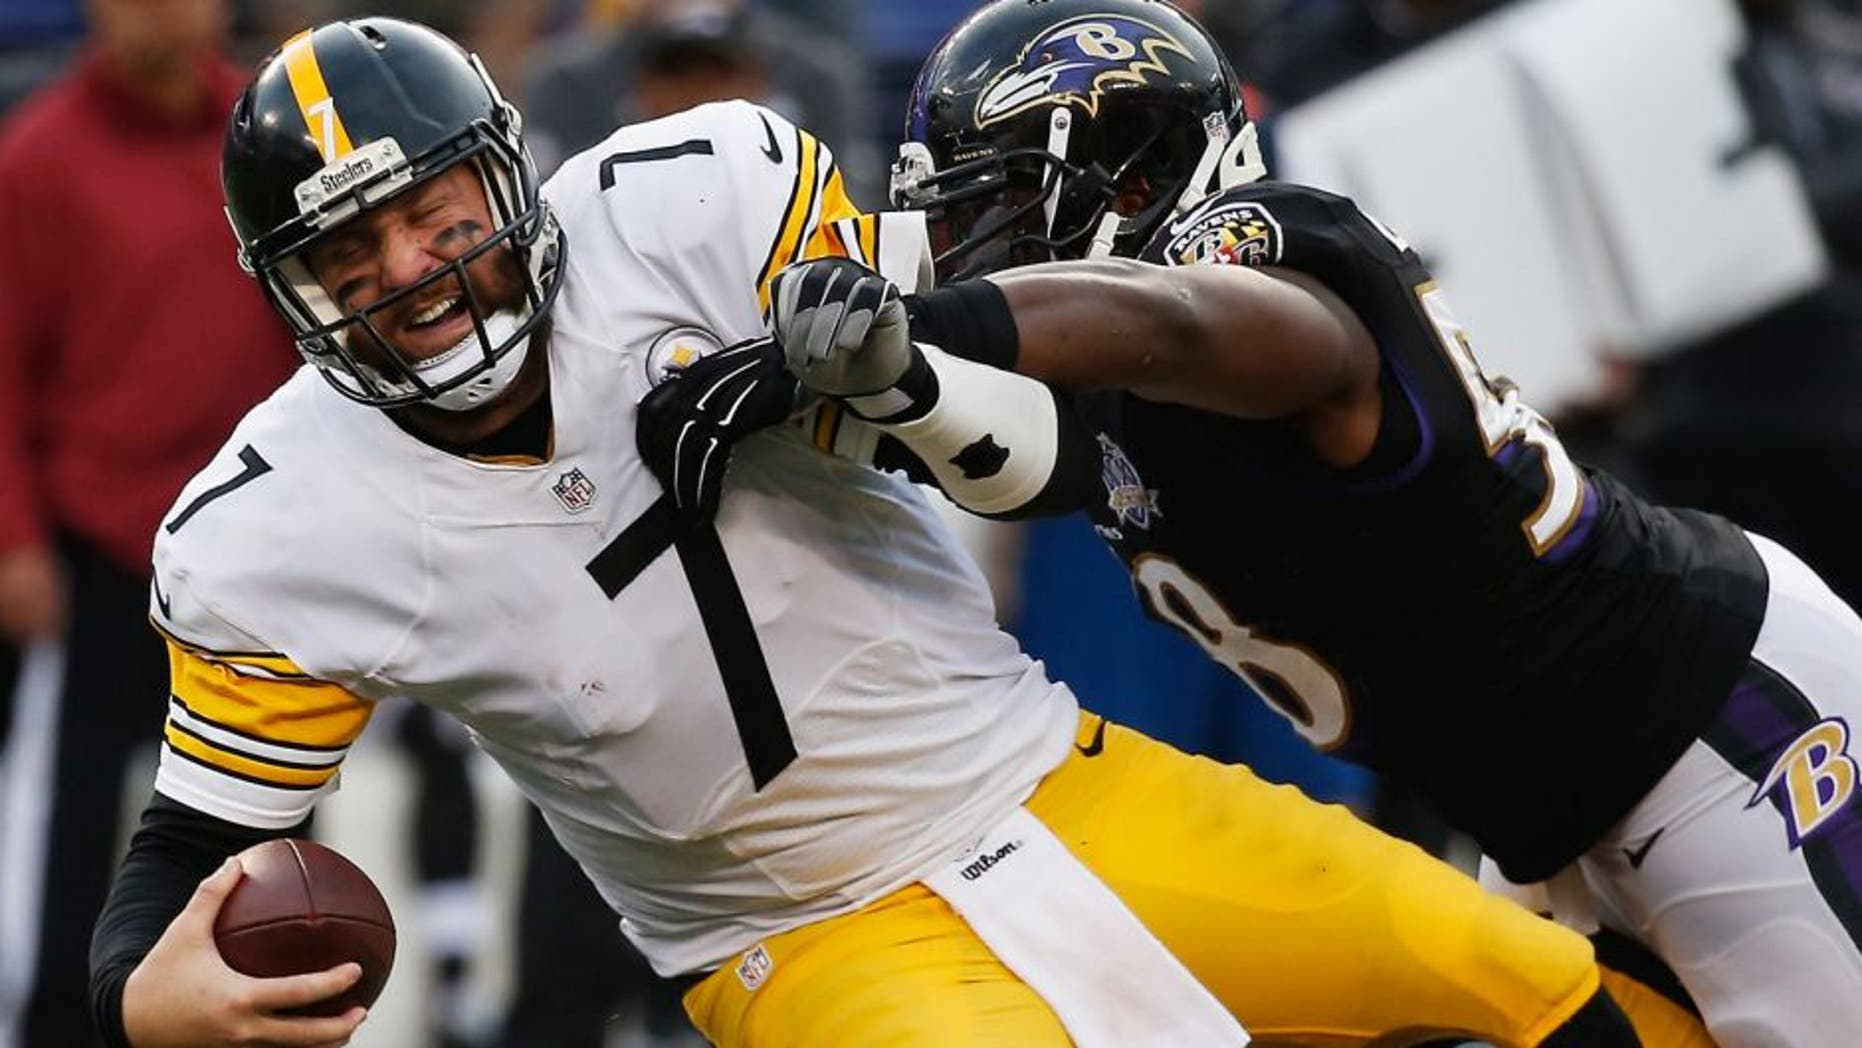 BALTIMORE, MD - DECEMBER 27: Ben Roethlisberger #7 of the Pittsburgh Steelers is sacked by Elvis Dumervil #58 of the Baltimore Ravens during the fourth quarter at M&T Bank Stadium on December 27, 2015 in Baltimore, Maryland. (Photo by Rob Carr/Getty Images)